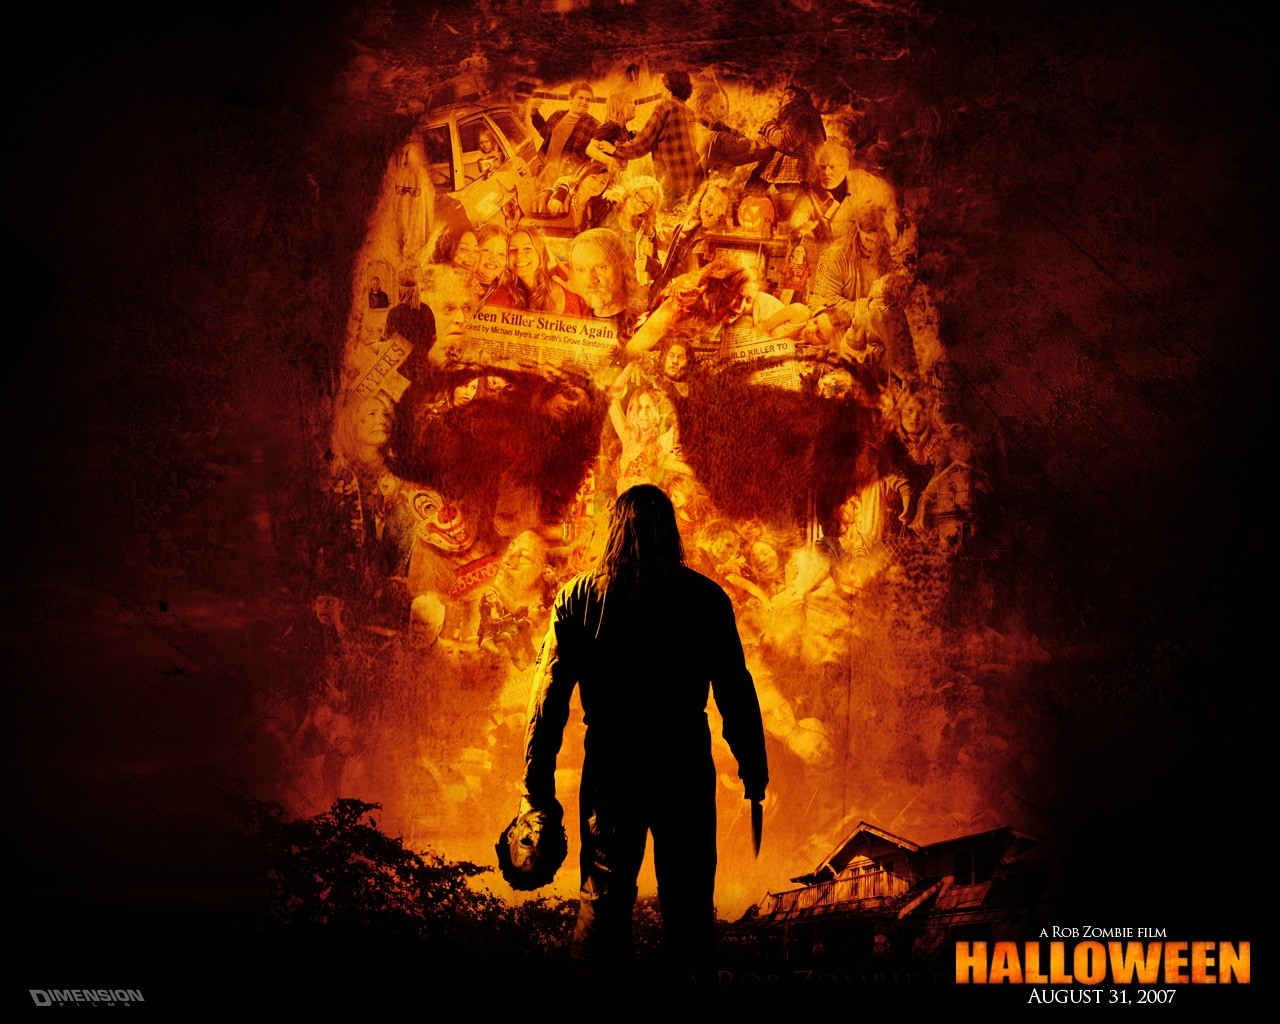 Wallpaper Halloween 2, Killer, Maniac, Death, Fear HD, Picture, Image